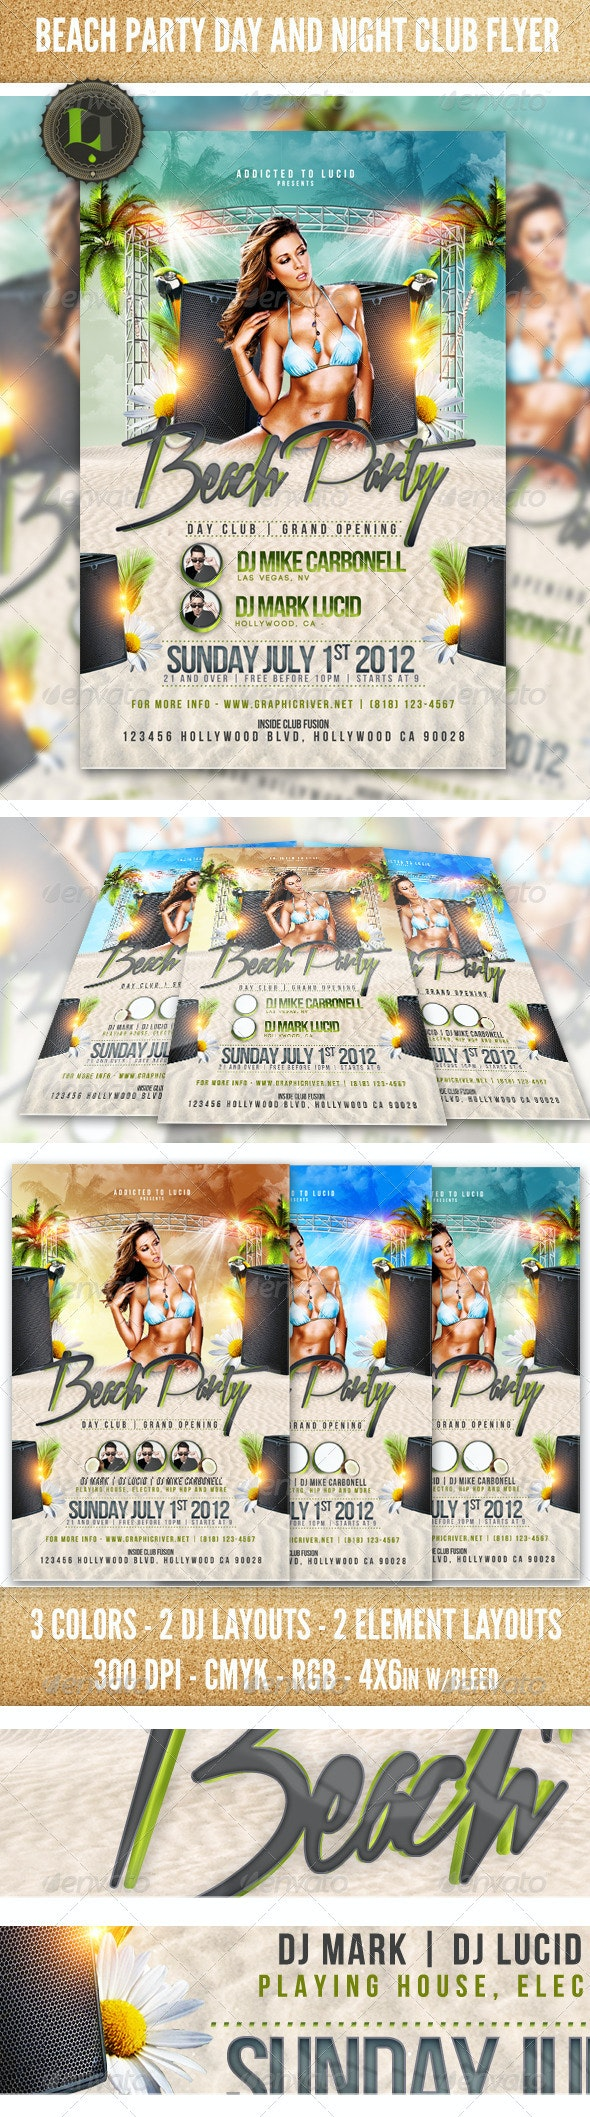 Beach Party - Day and Night Club Flyer - Clubs & Parties Events